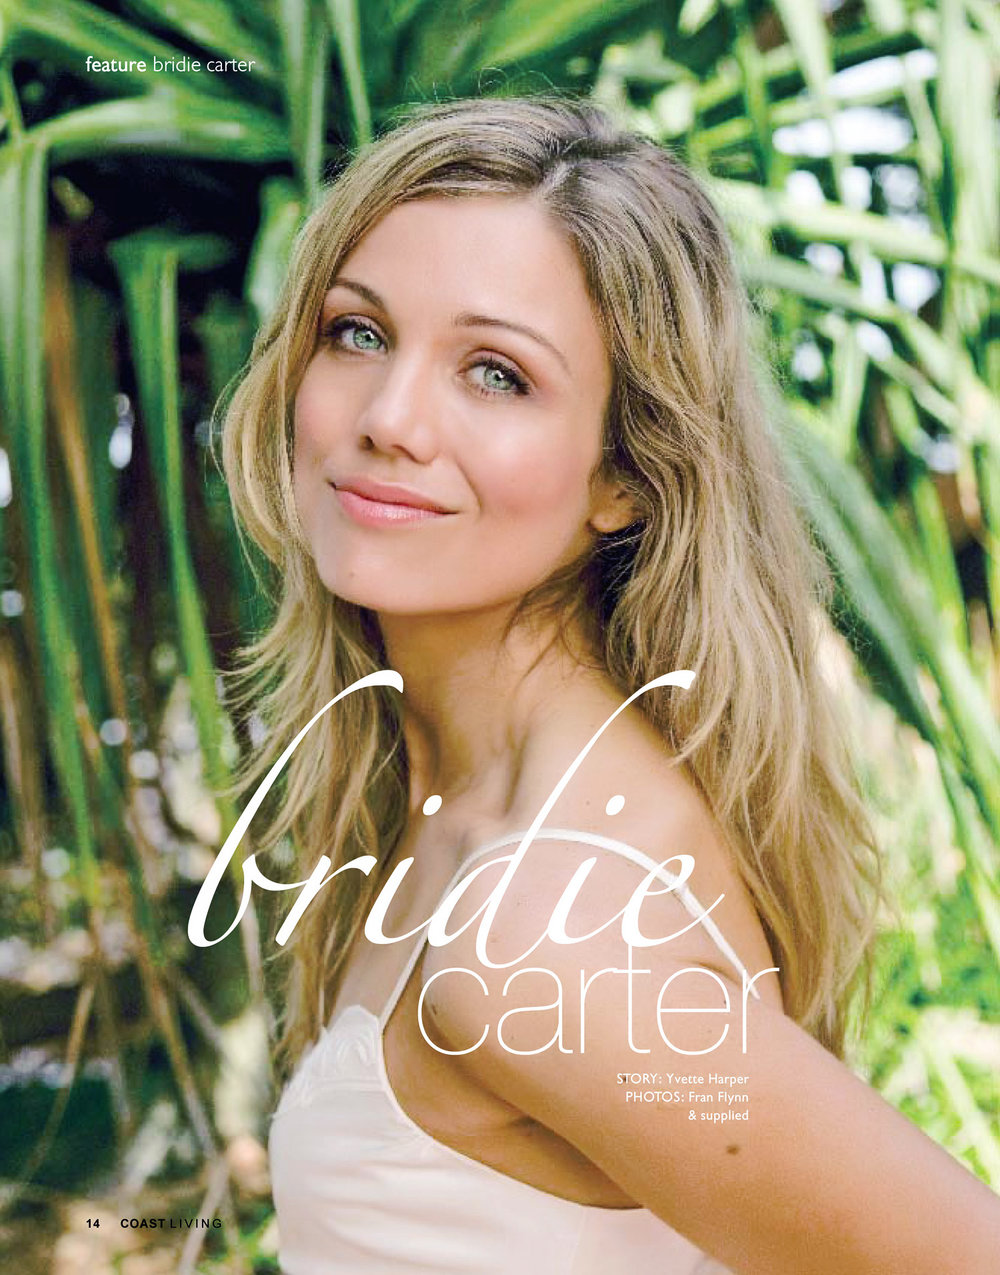 BRIDIE CARTER FOR COAST LIVING MAGAZINE>>